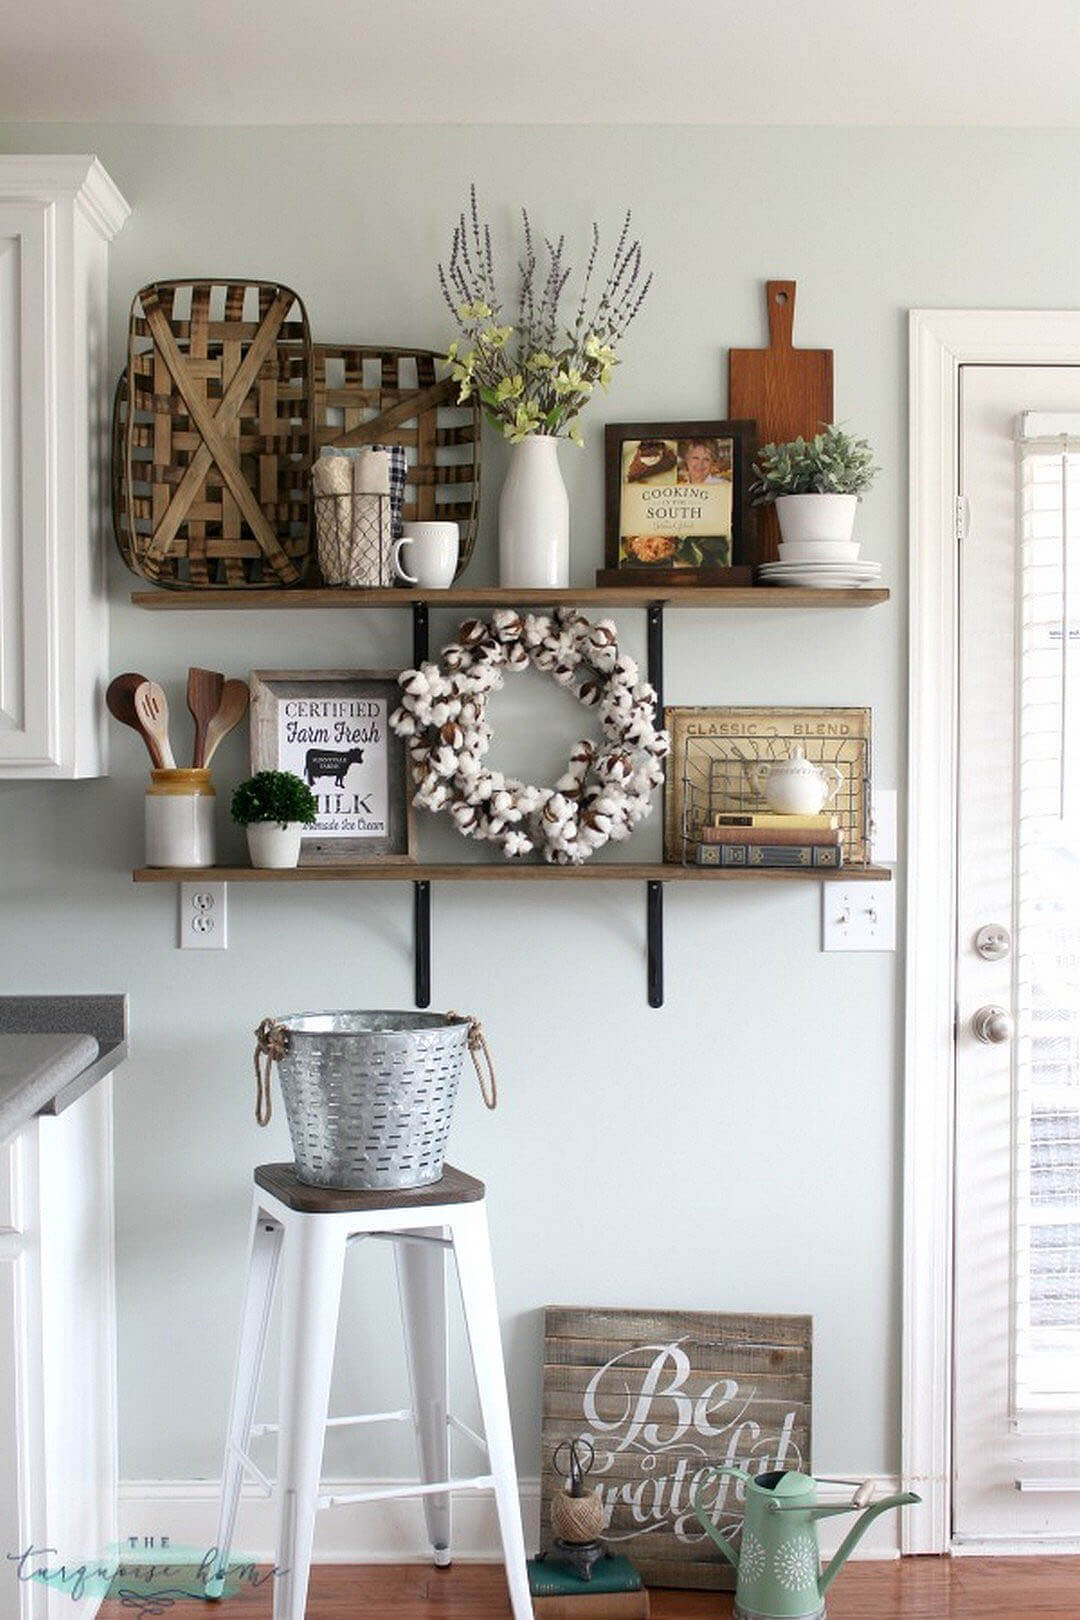 Great Rustic Farmhouse Kitchen Shelf Display